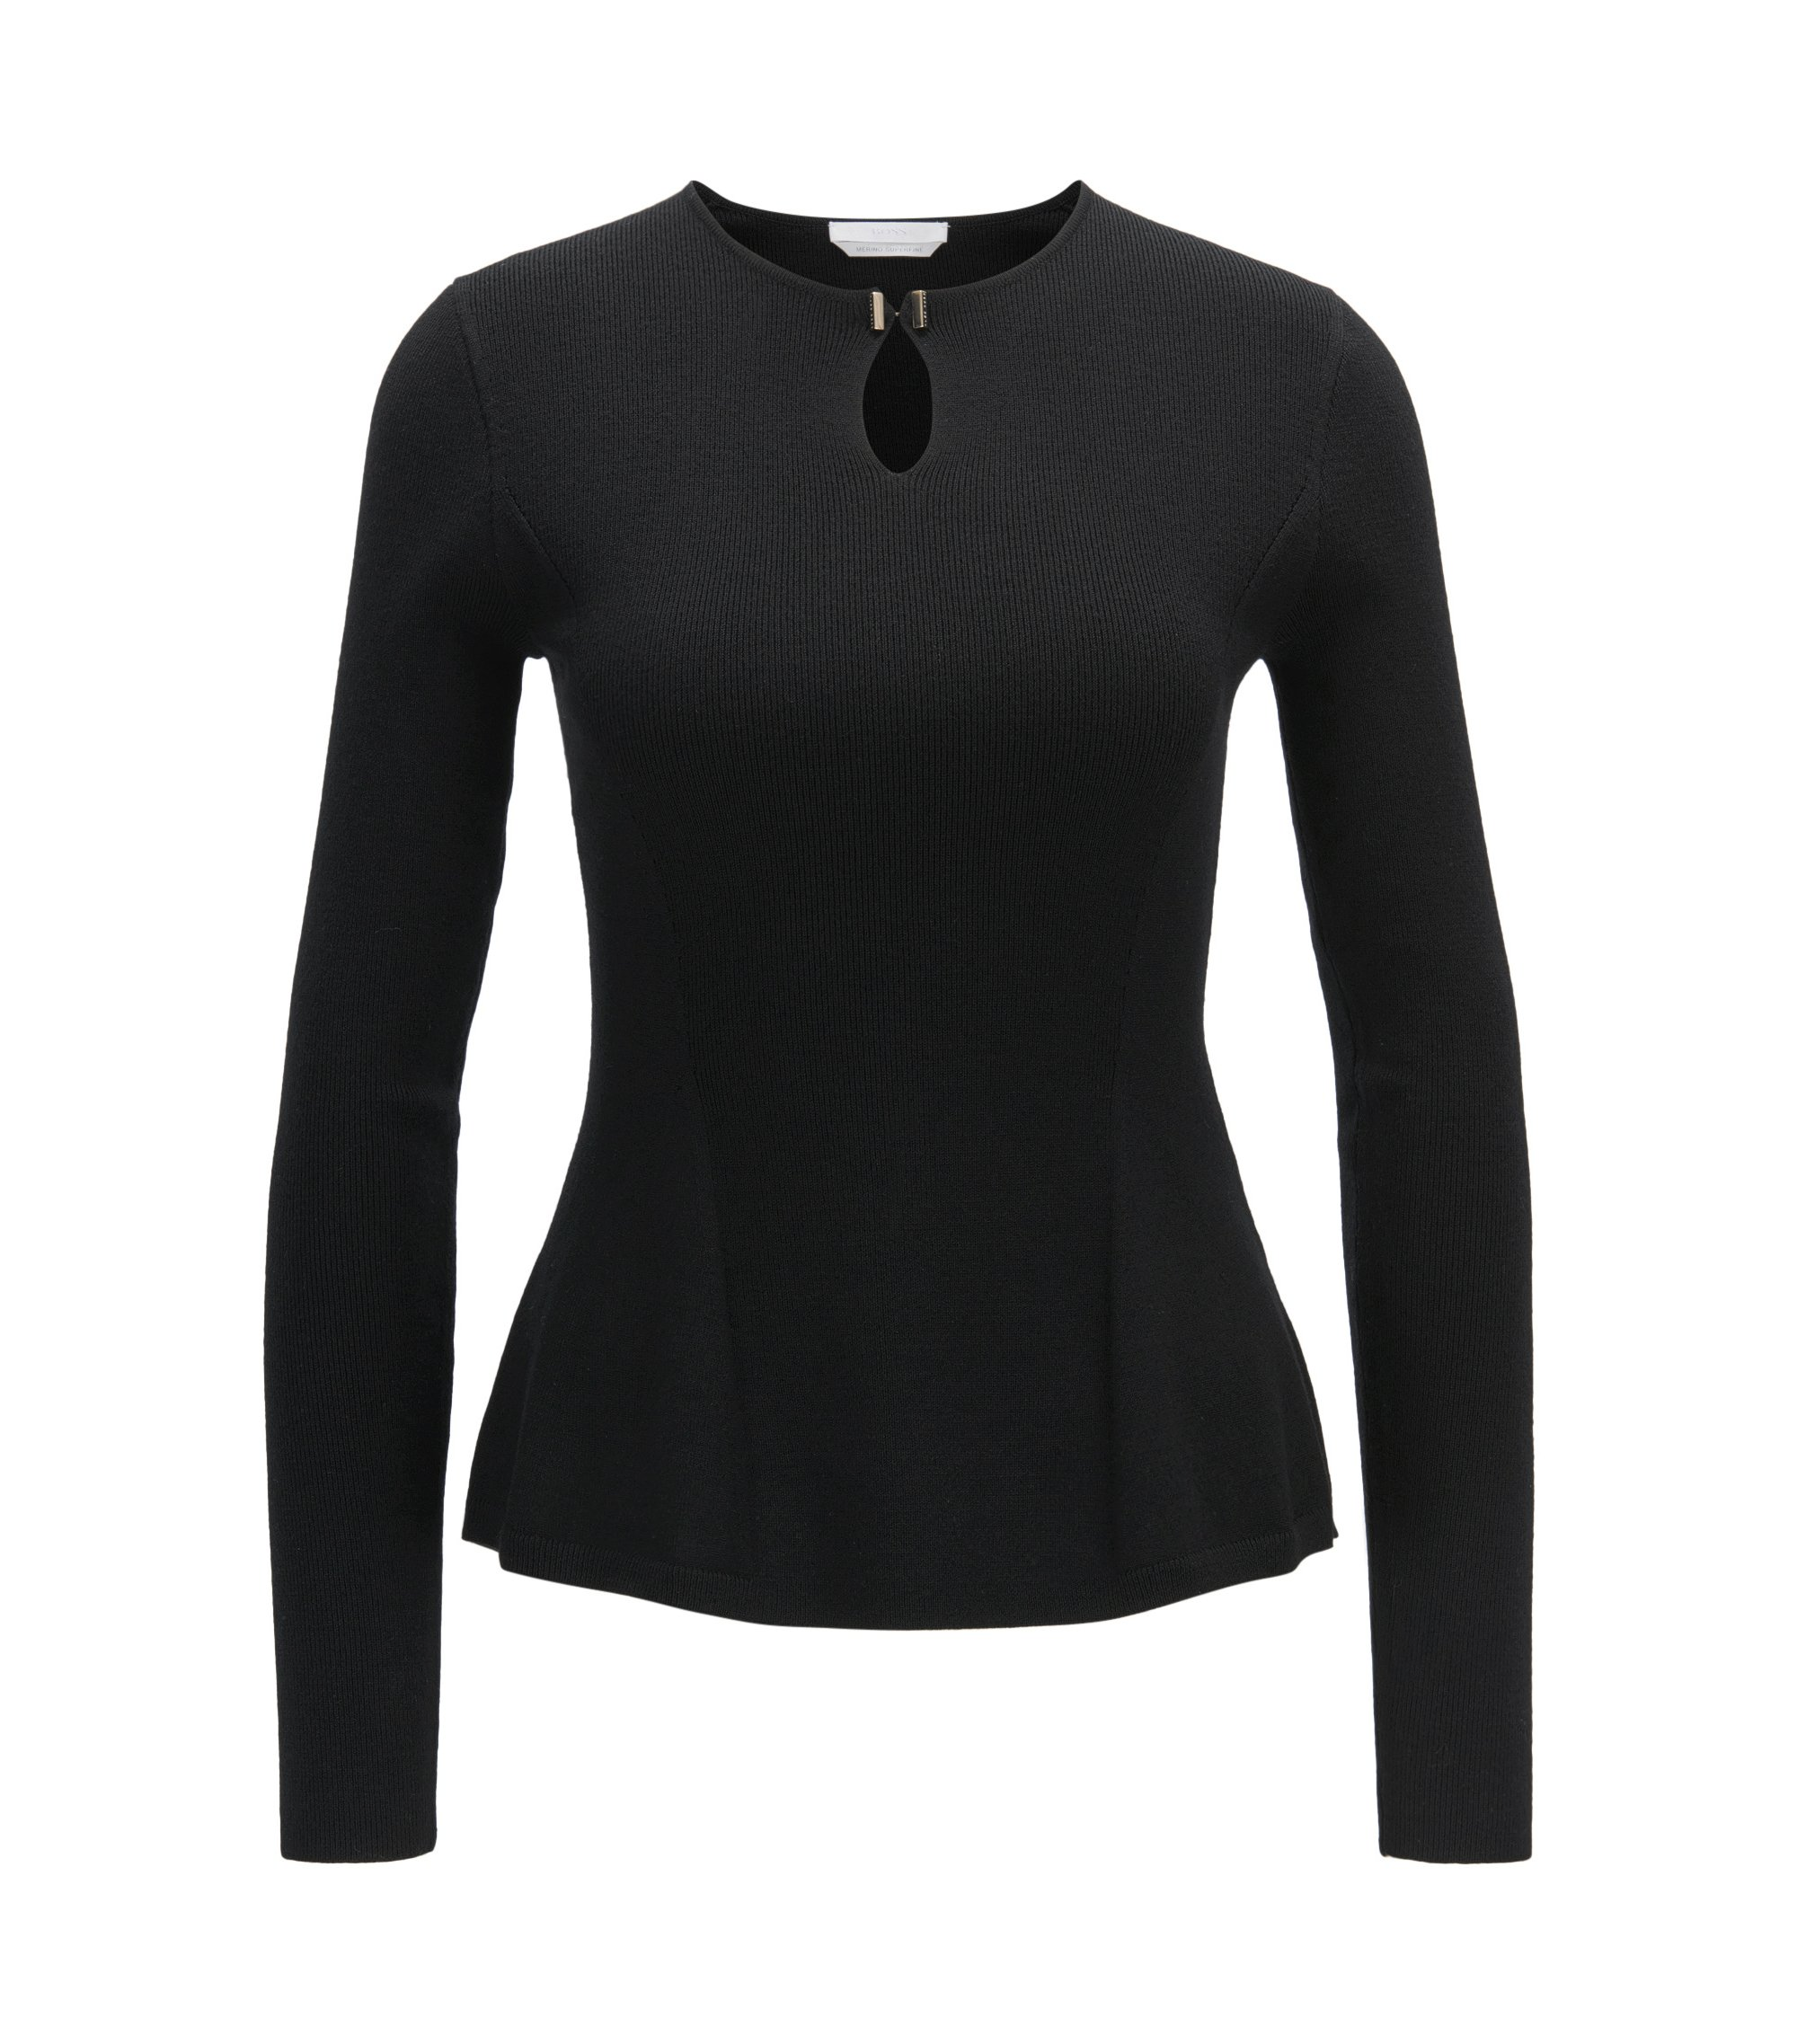 Peplum top in a mercerised virgin wool blend, Black